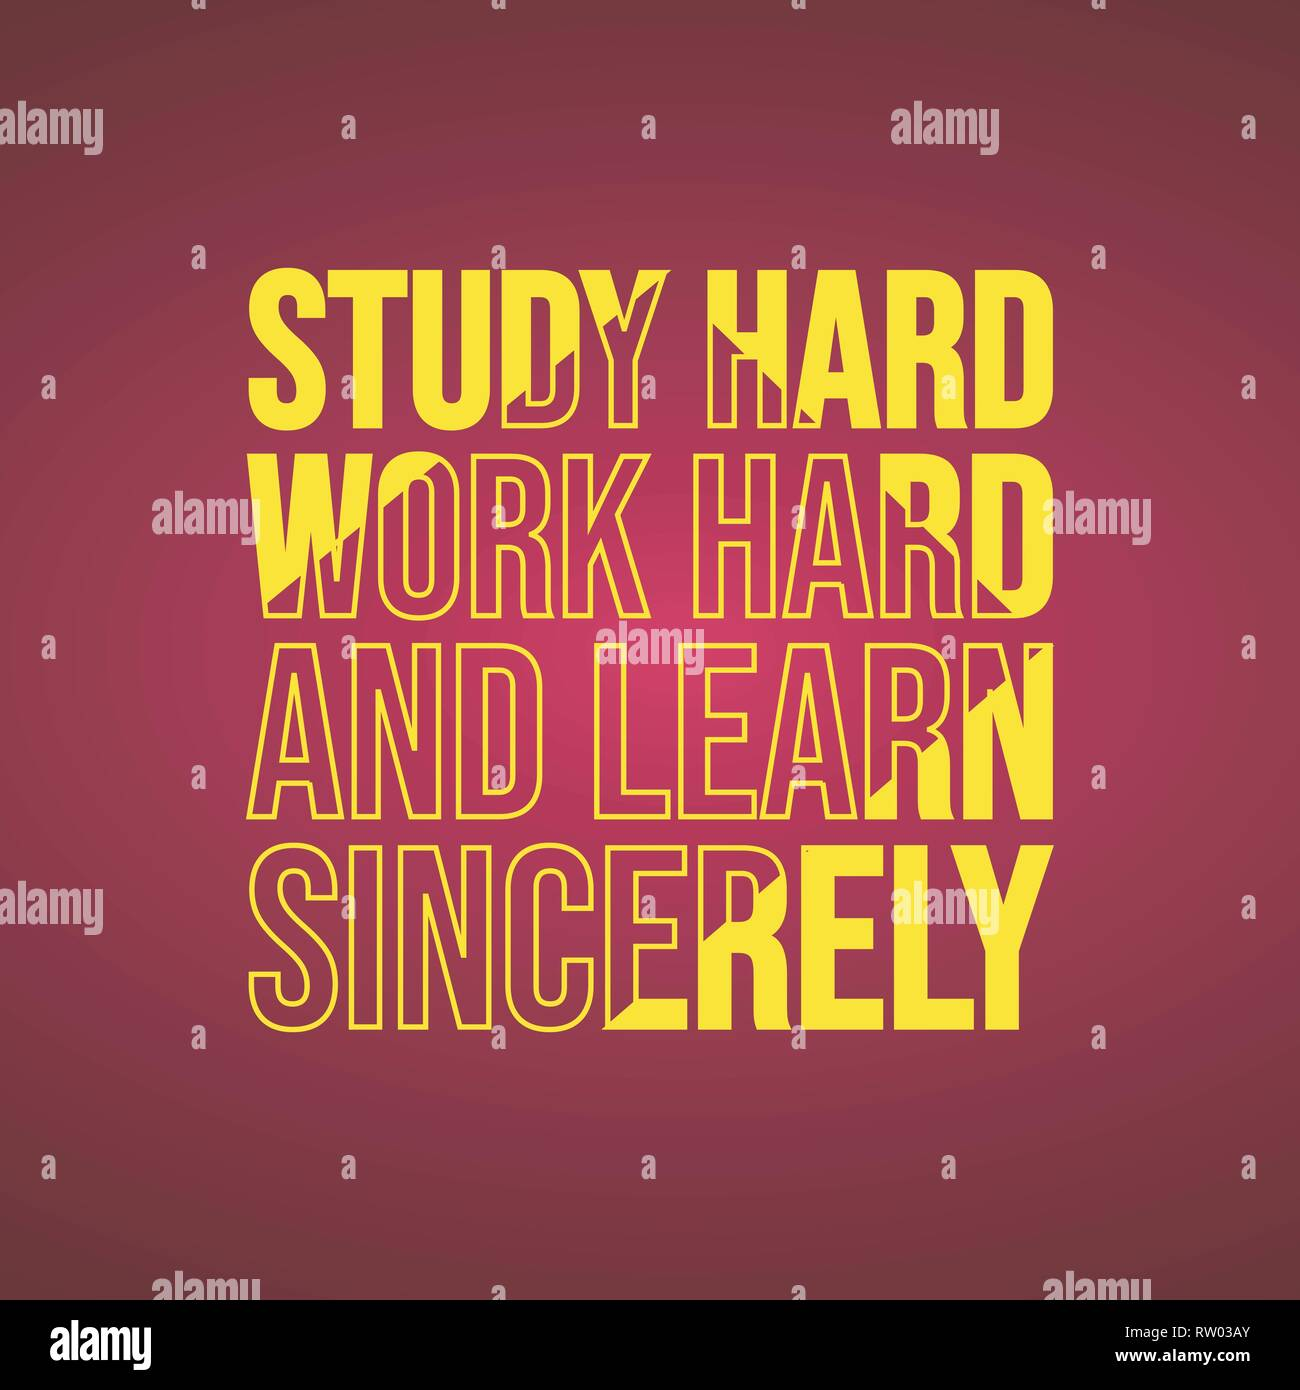 Study Hard Work Hard And Learn Sincerely Education Quote With Modern Background Illustration Stock Vector Image Art Alamy